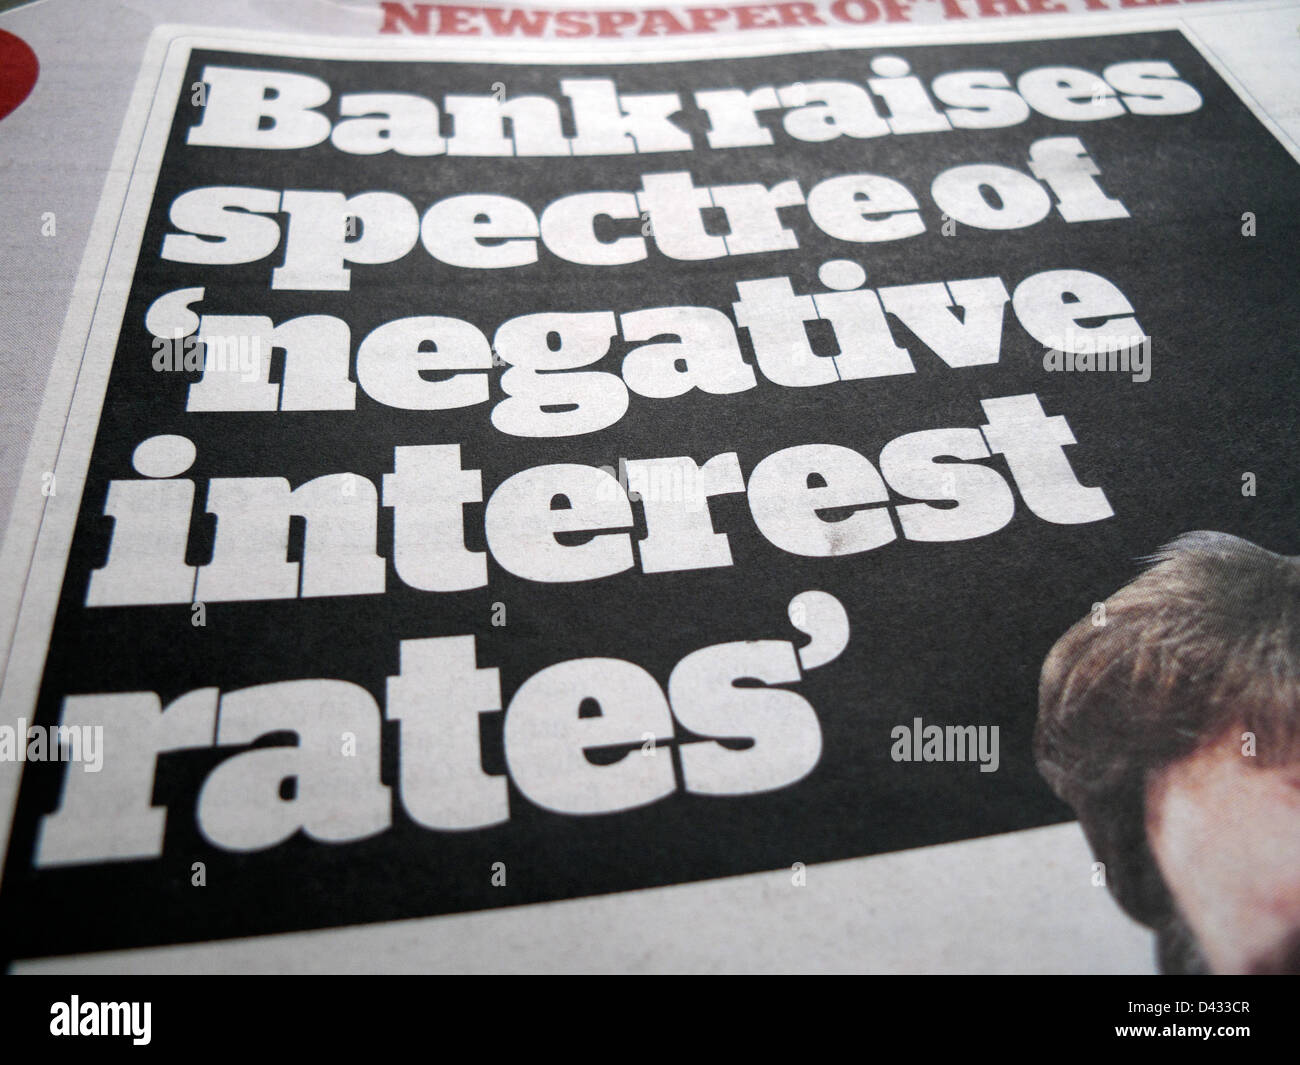 Bank raises spectre of 'negative interest rates' on front page i newspaper headlines in  27.02.2013 London - Stock Image